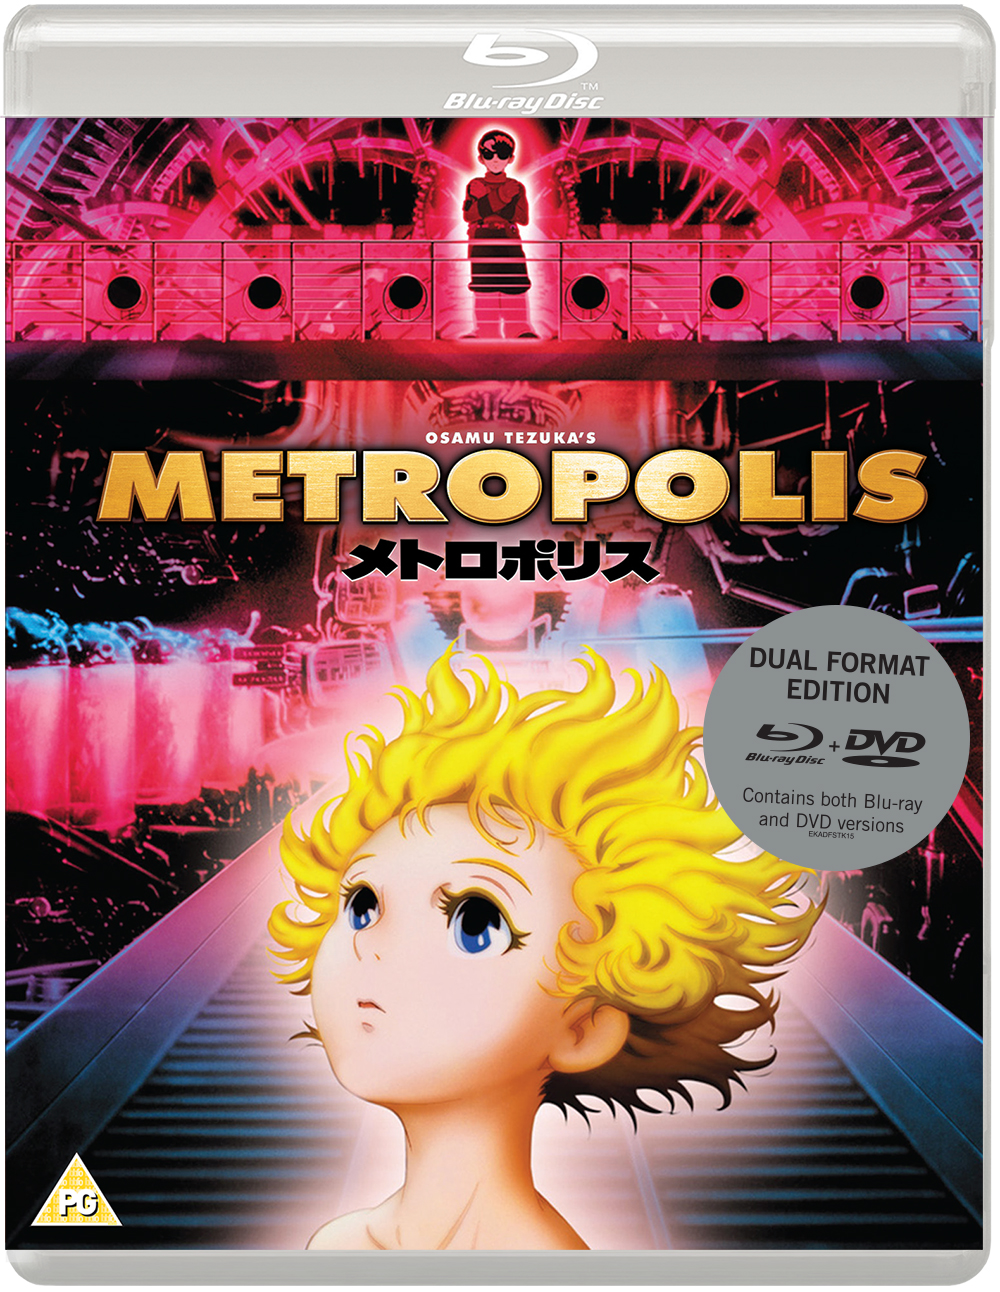 Metropolis Blu-ray review: no, not that one